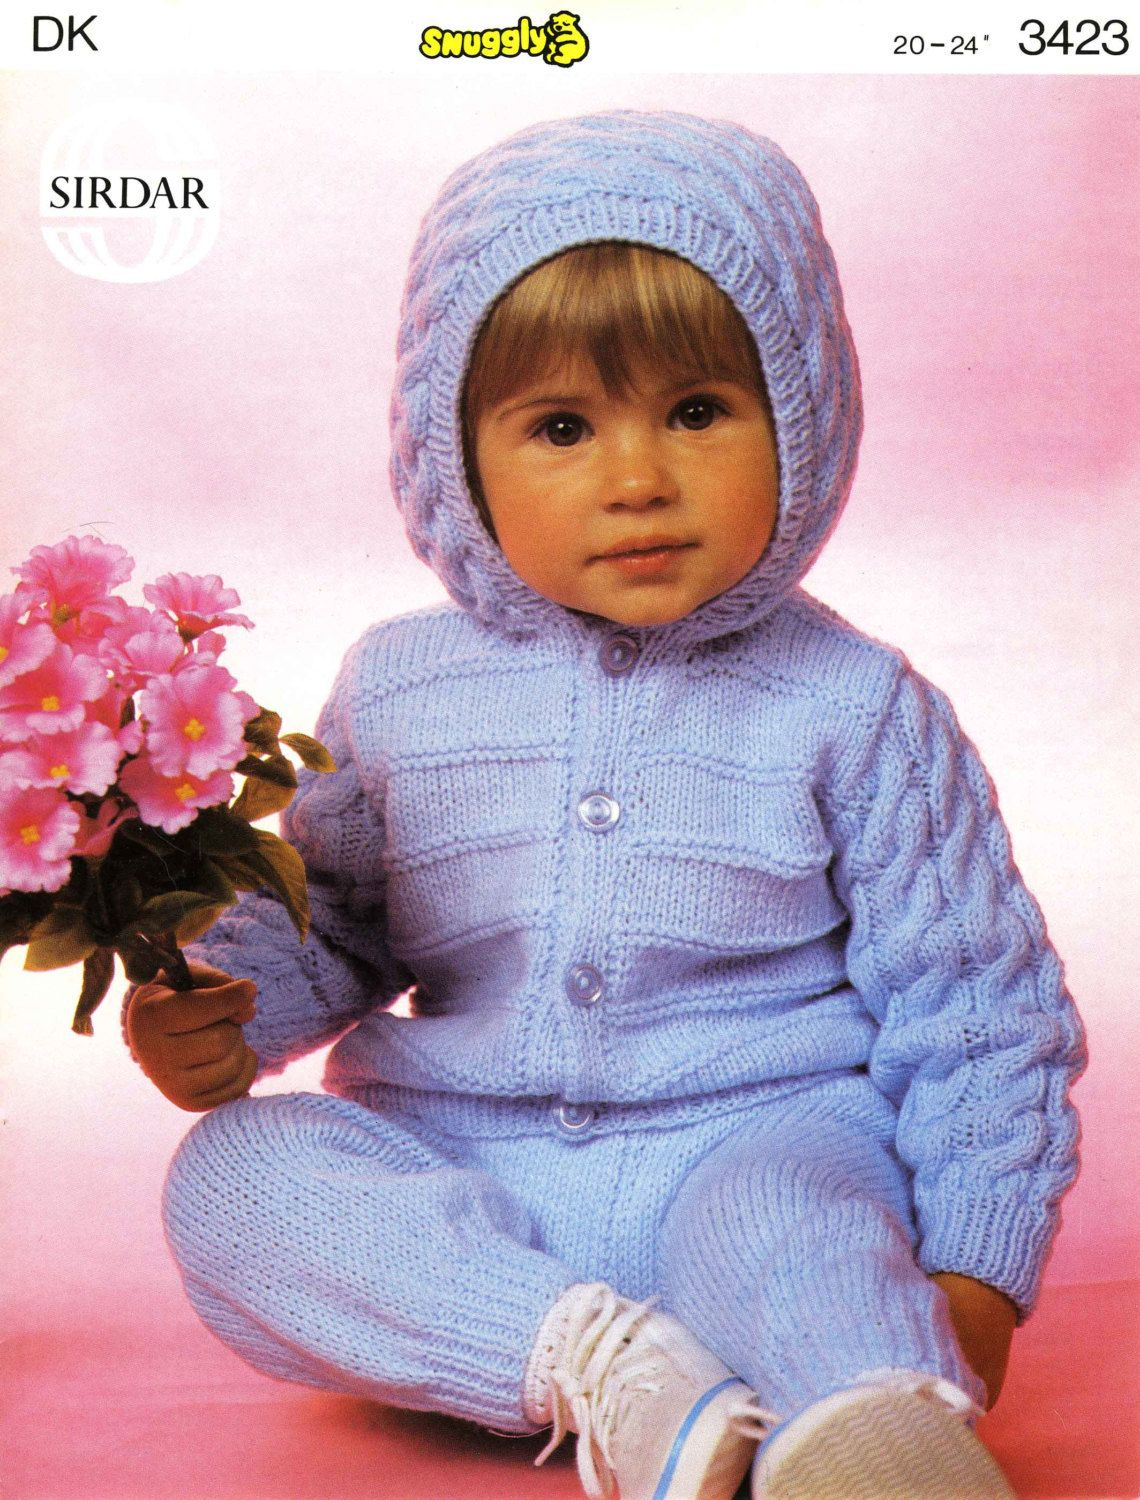 Vintage childrens jacket and trousers knitting pattern 19601970 vintage childrens jacket and trousers knitting pattern pdf pattern sirdar 2423 by on etsy bankloansurffo Image collections